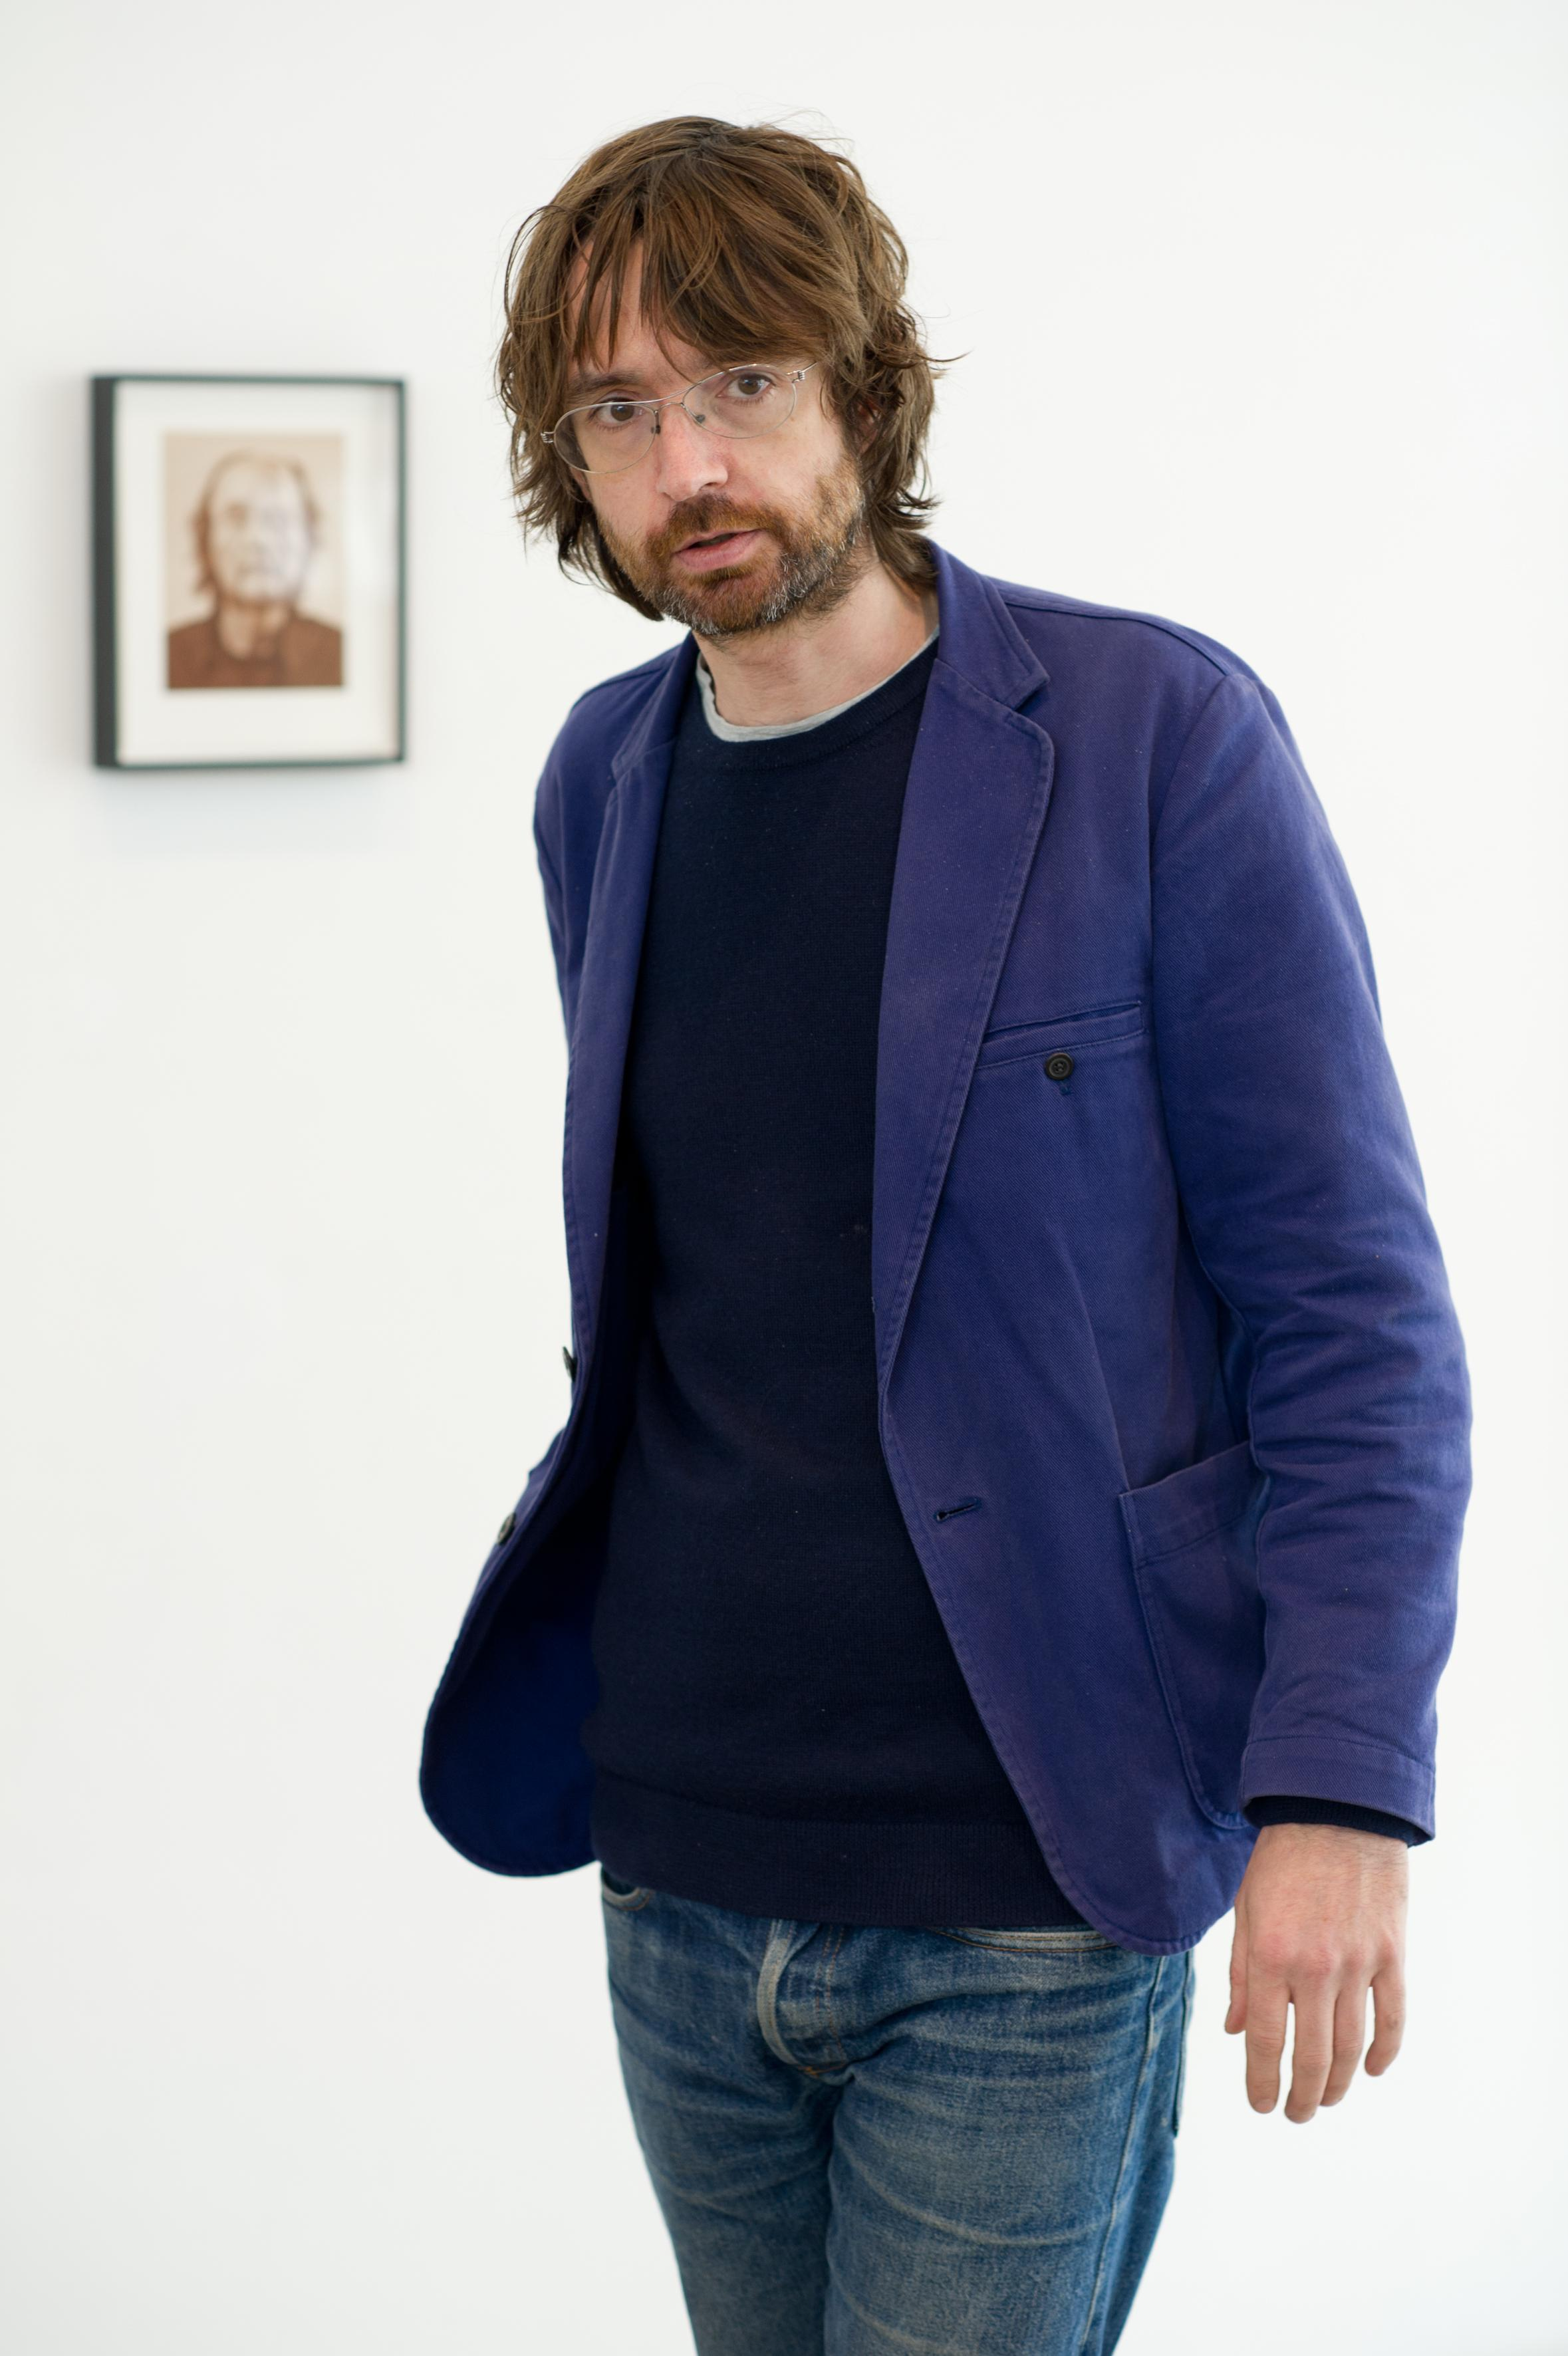 Photograph of a shaggy haired man, wearing glasses and a bright blue suit jacket, standing in front of a framed portrait hung on the wall